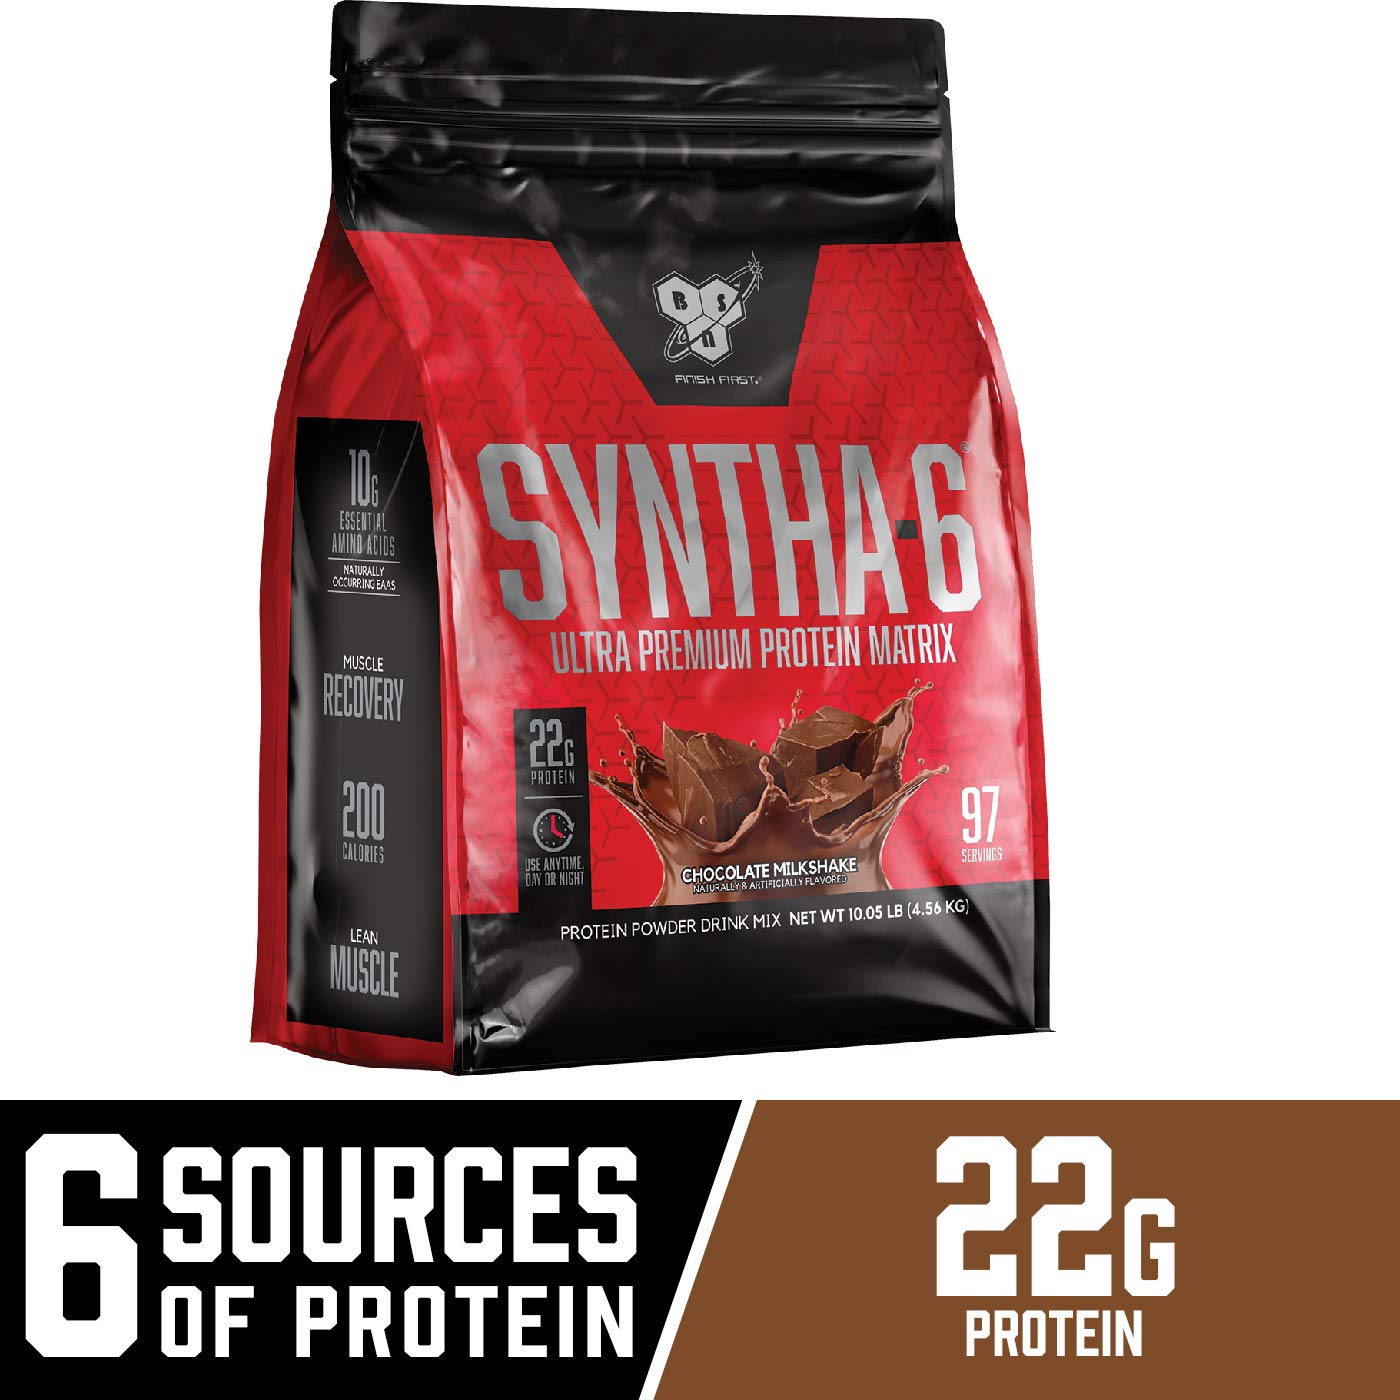 BSN SYNTHA-6 Whey Protein Powder, Micellar Casein, Milk Protein Isolate Powder, Chocolate Milkshake, 97 Servings (Package May Vary) by BSN (Image #1)